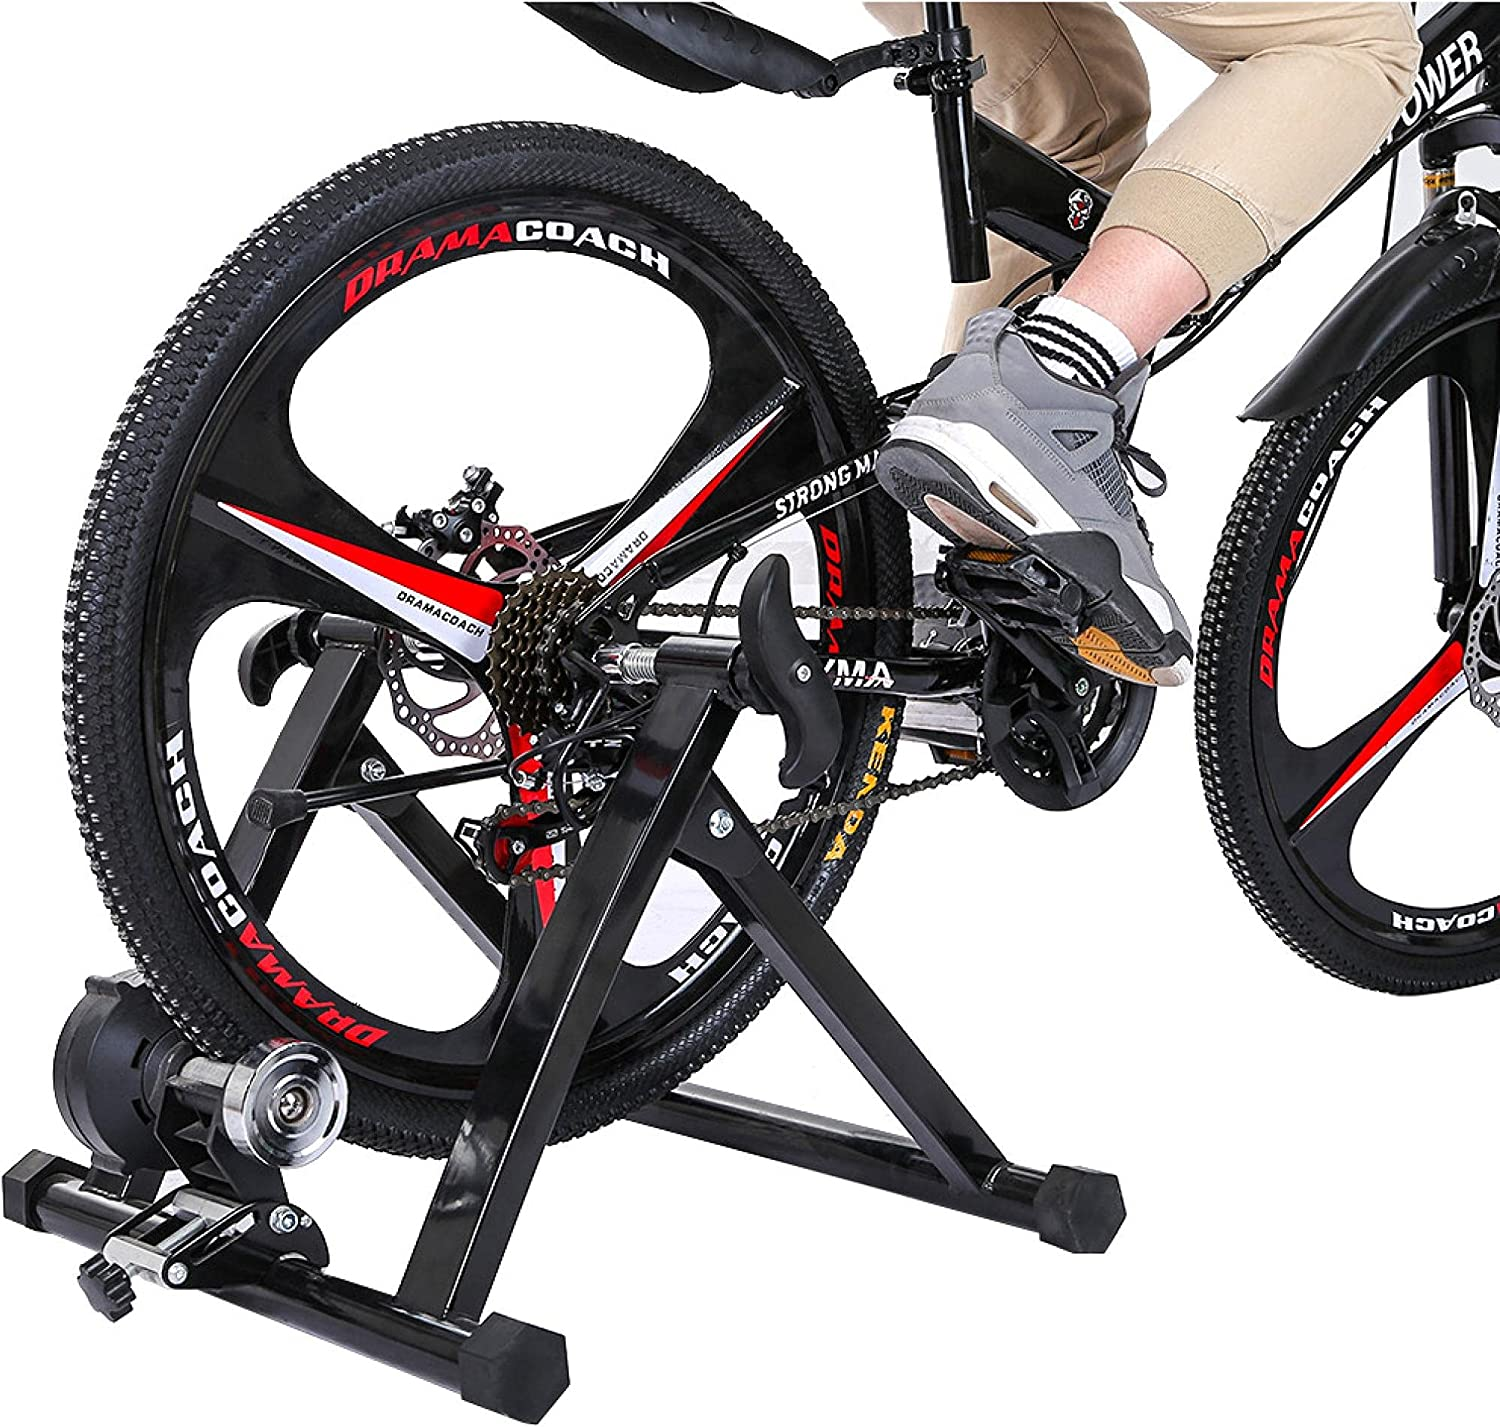 Bike Trainer Stand Charlotte Mall Magnetic Bargain sale Stationary Wire Controlled Bicycle